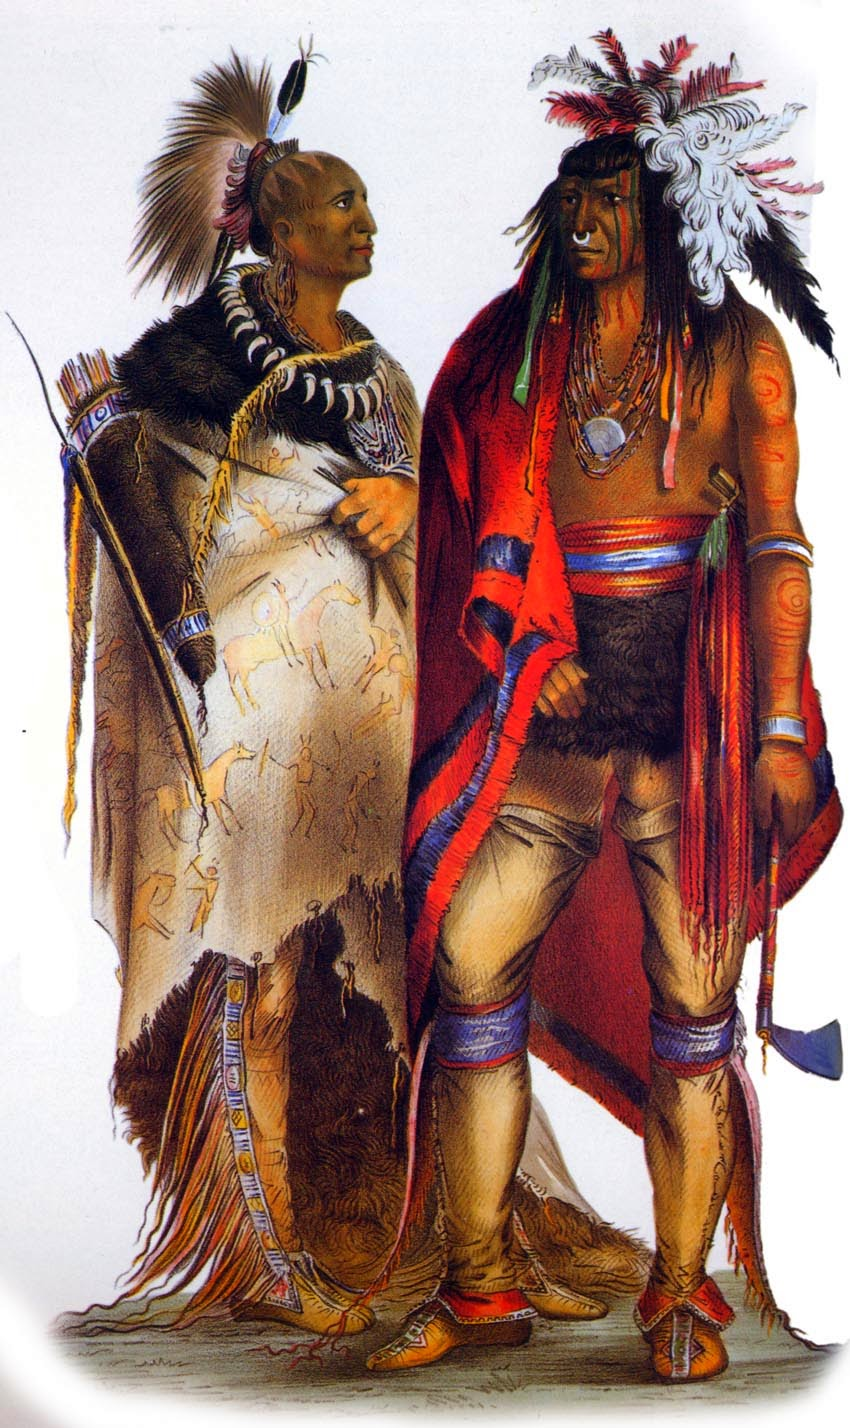 American Are What People Oneida Famous Then Tribe Native Back